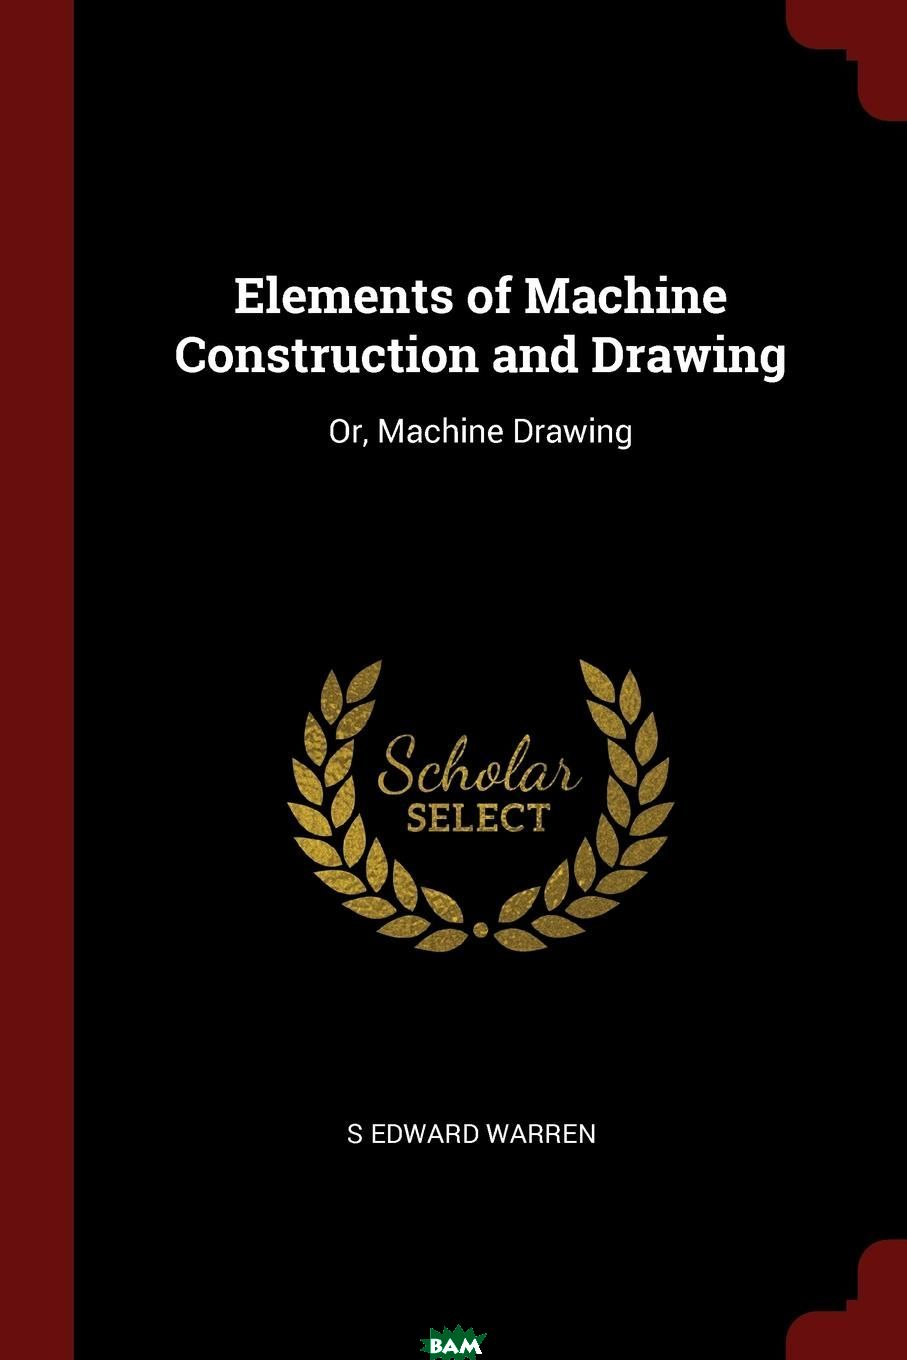 Купить Elements of Machine Construction and Drawing. Or, Machine Drawing, S EDWARD WARREN, 9781375554923